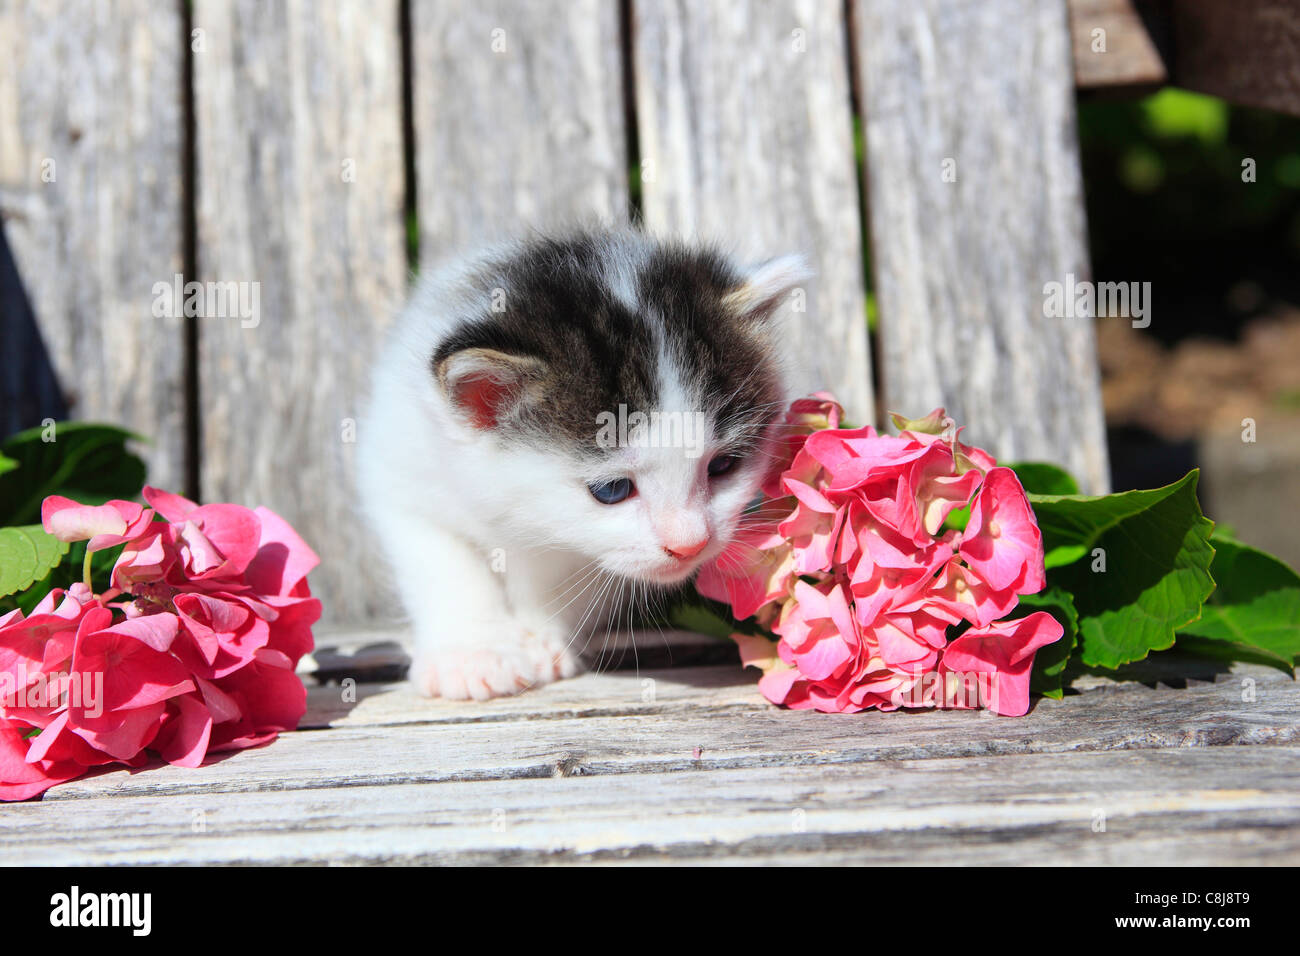 3 weeks, flower, flowers, garden, house, home, Animal, domestic animal, pet, young, cat, kitten, outdoors, outside, Stock Photo